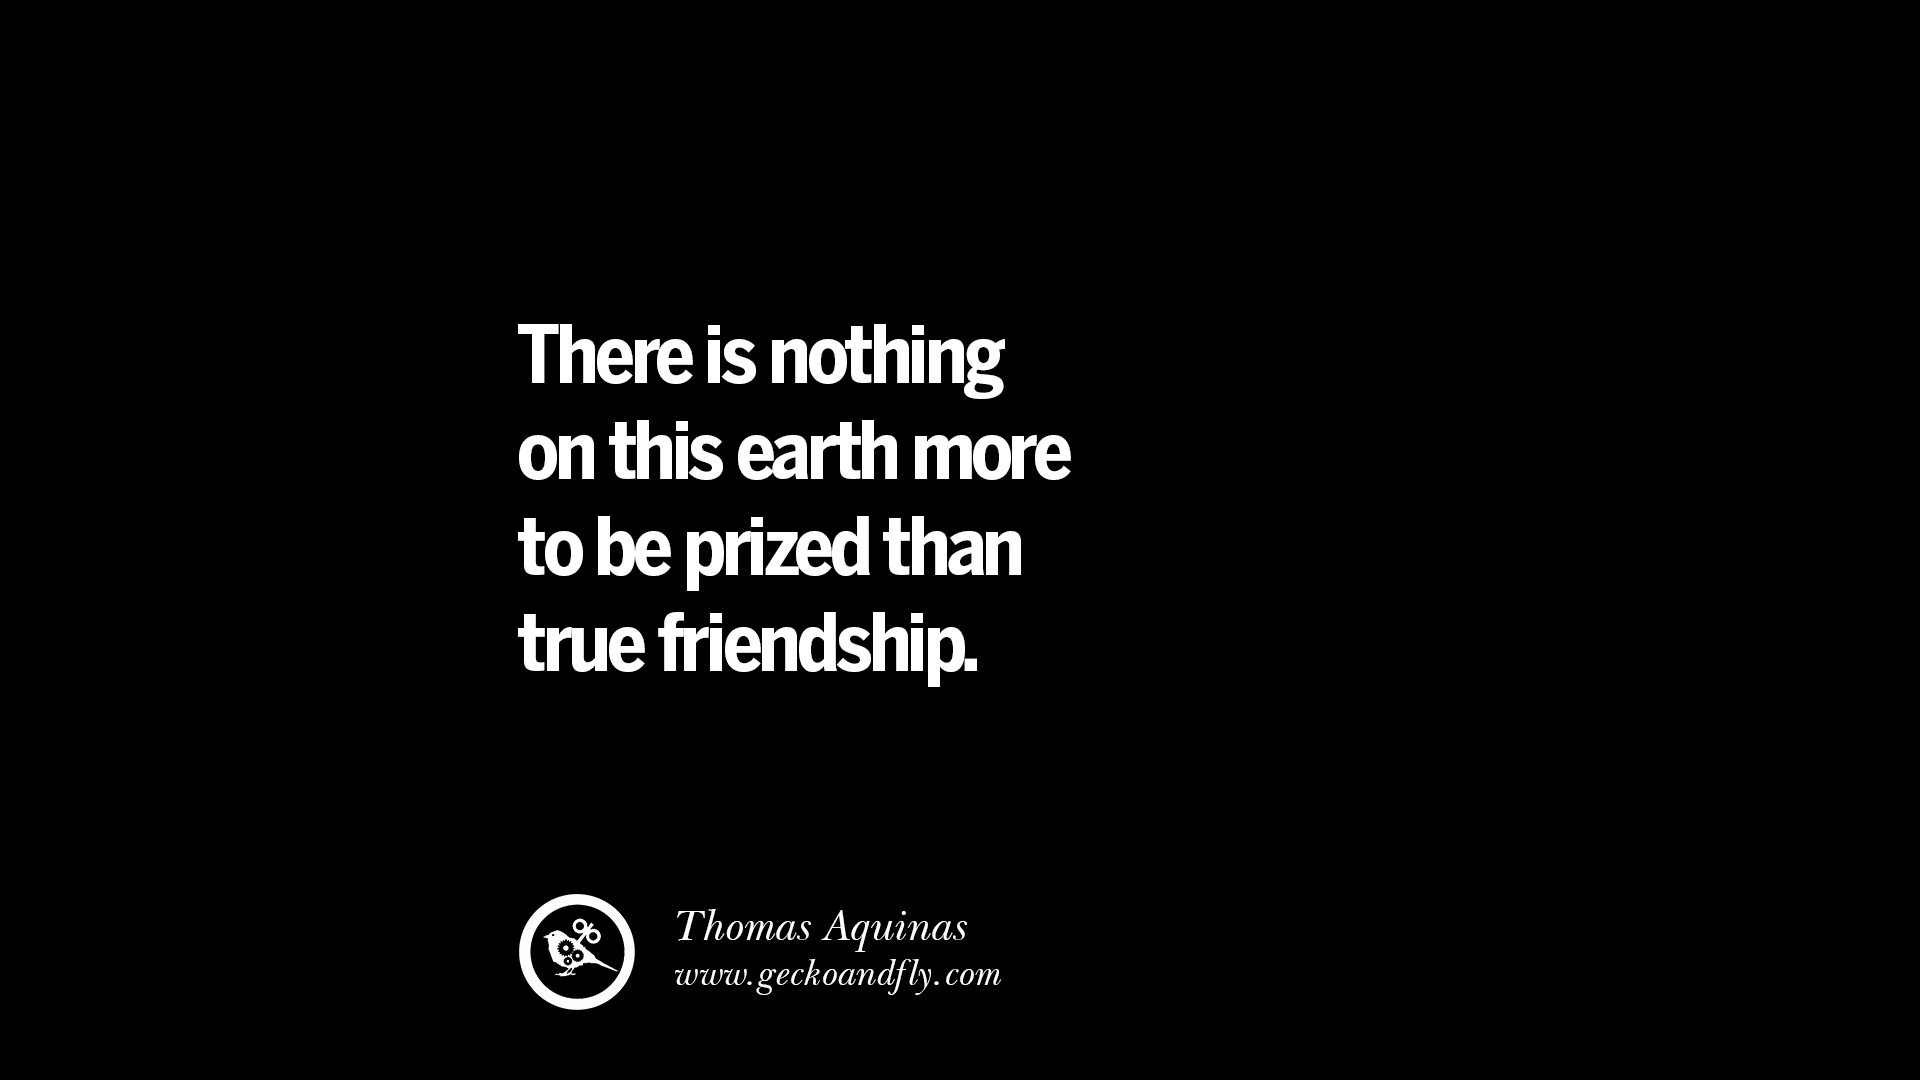 Quotes About Friendship Pictures Romantic Quotes For Friendship Love Quotes Best For Your Life.